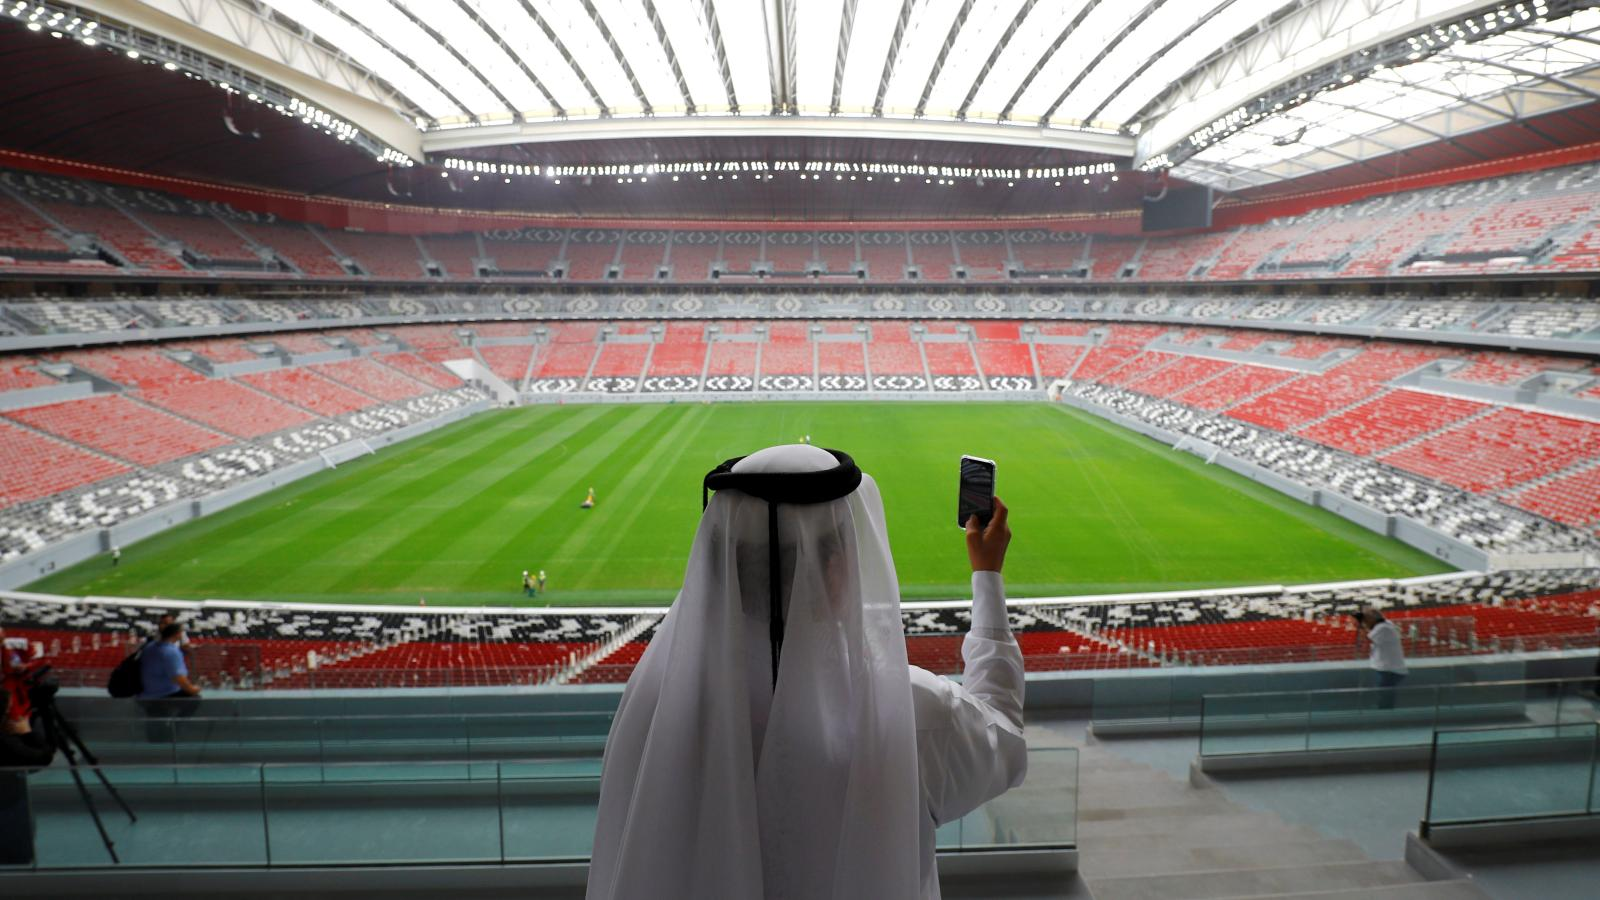 Will Qatar be ready to host the World Cup in 2022? — Quartz